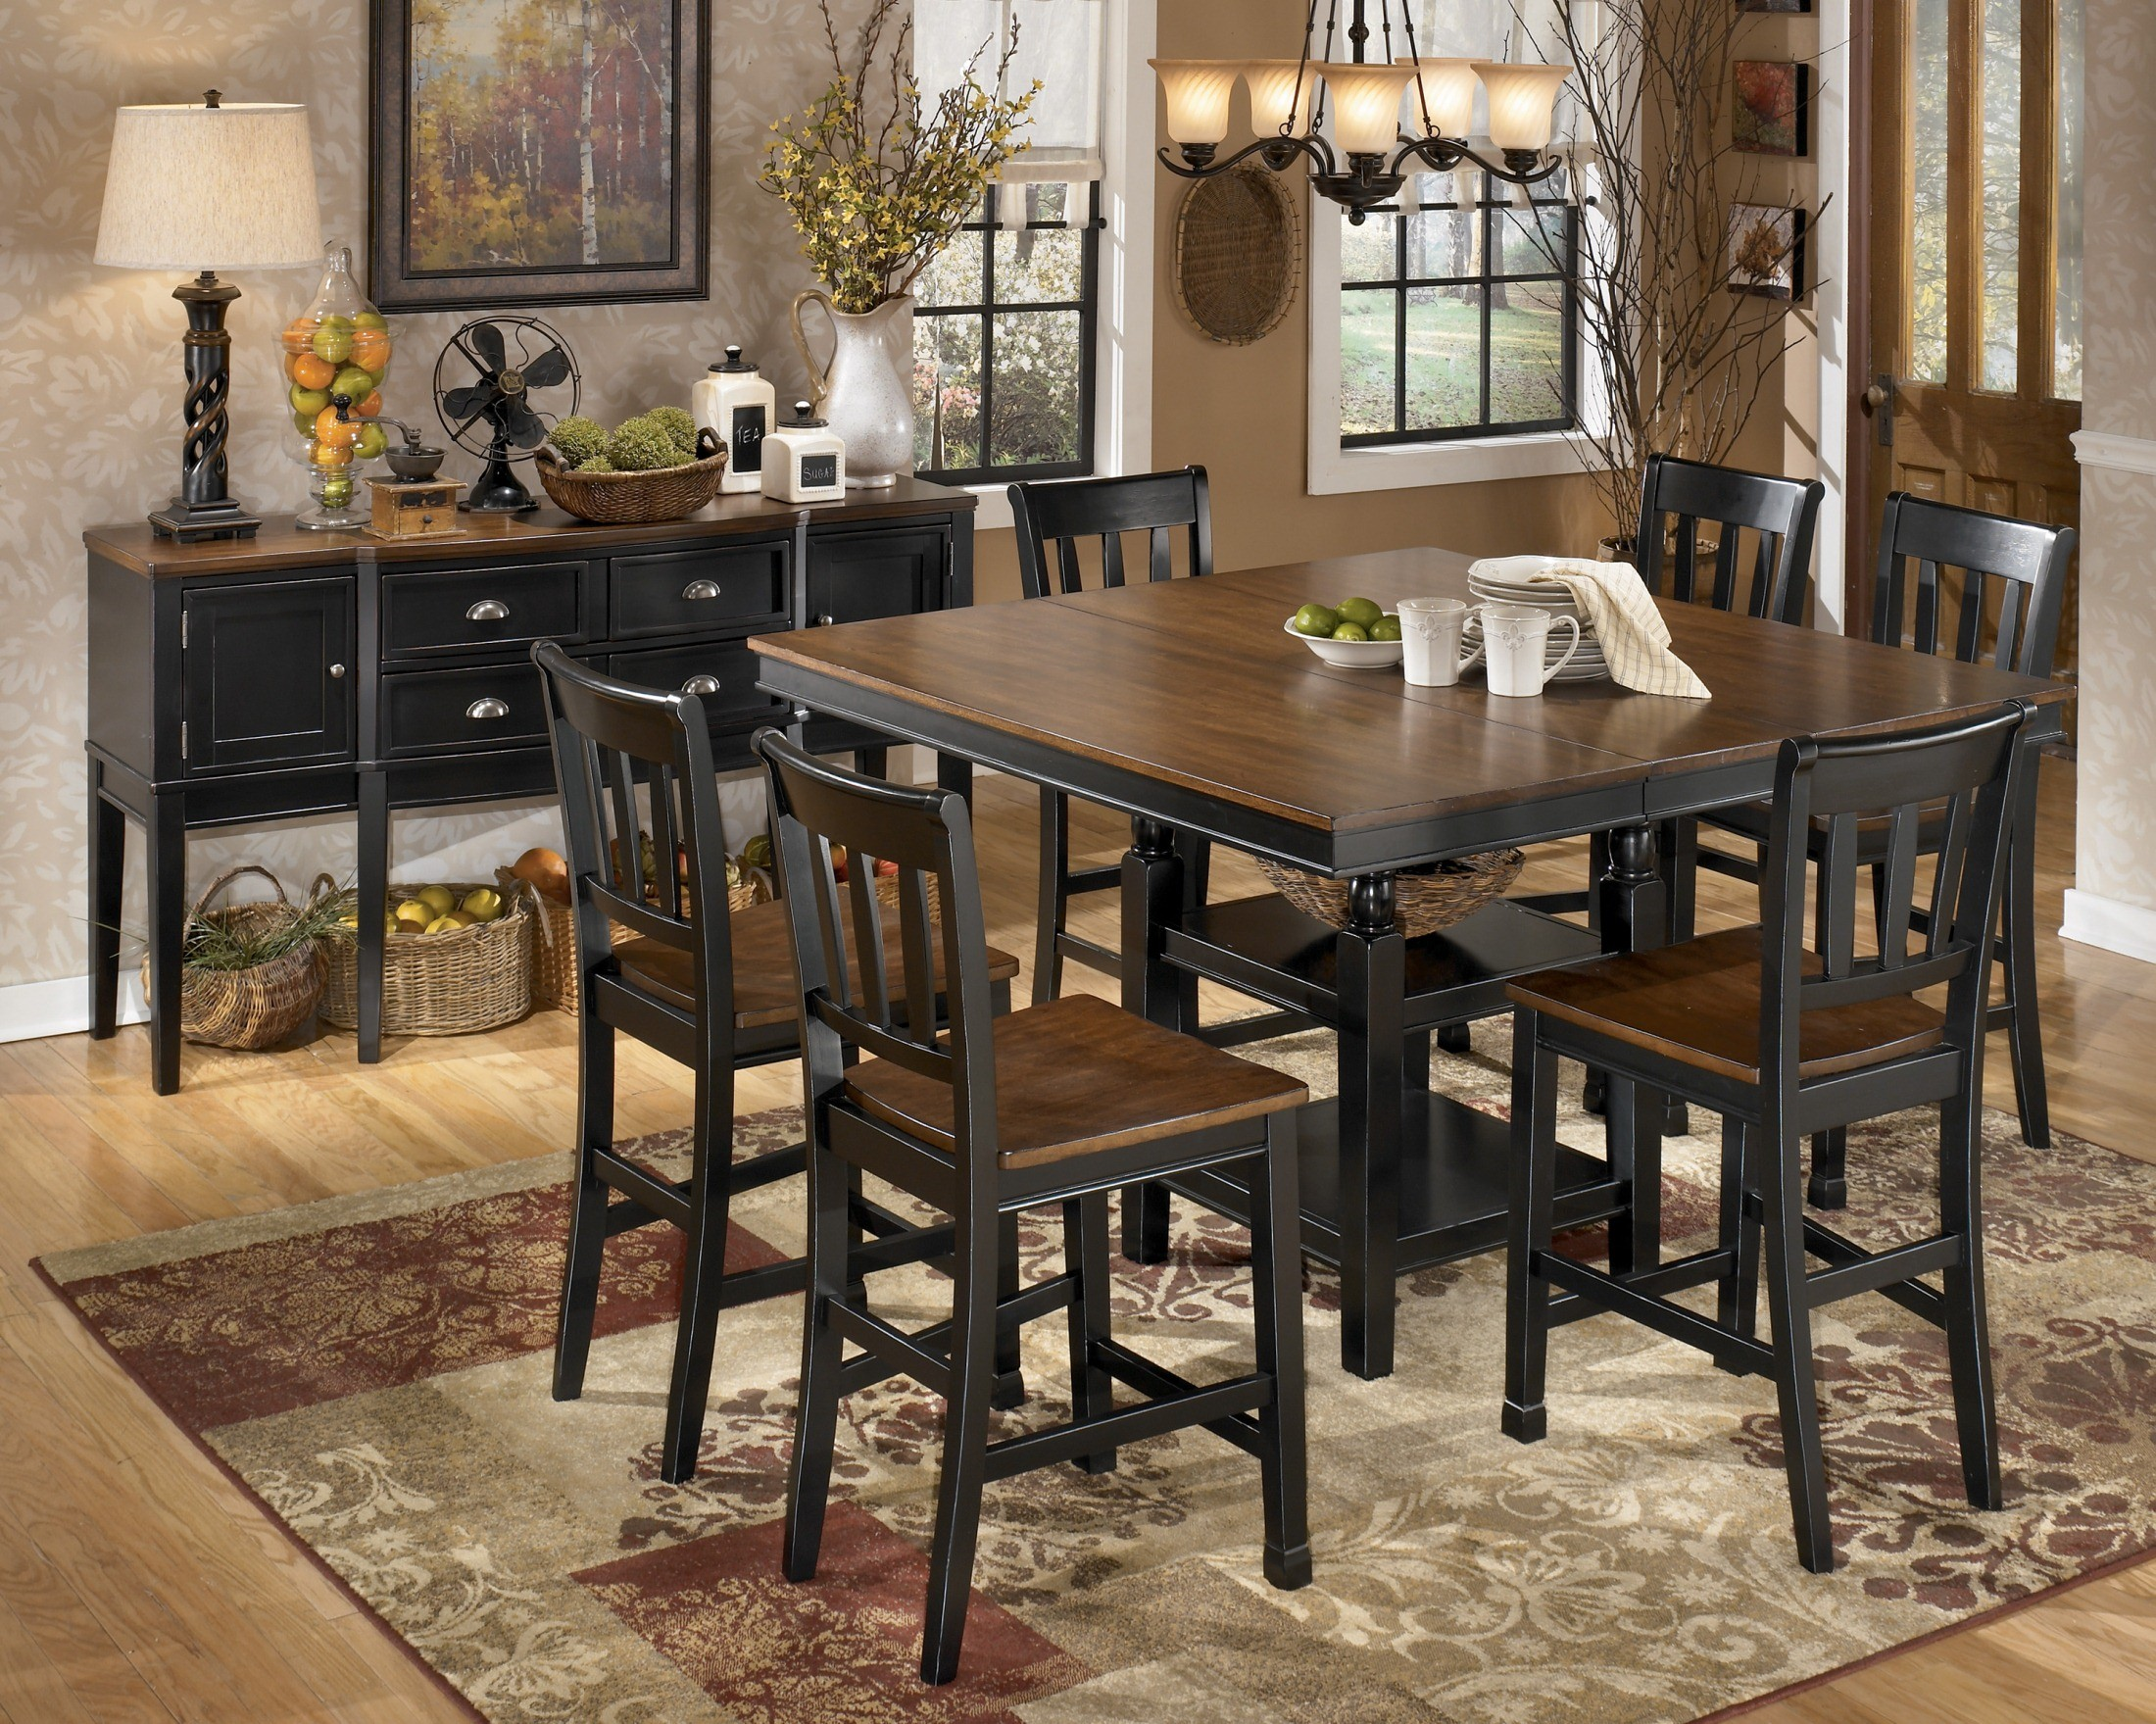 Owingsville Dining Room Extension Table 28 Images Benchcraft